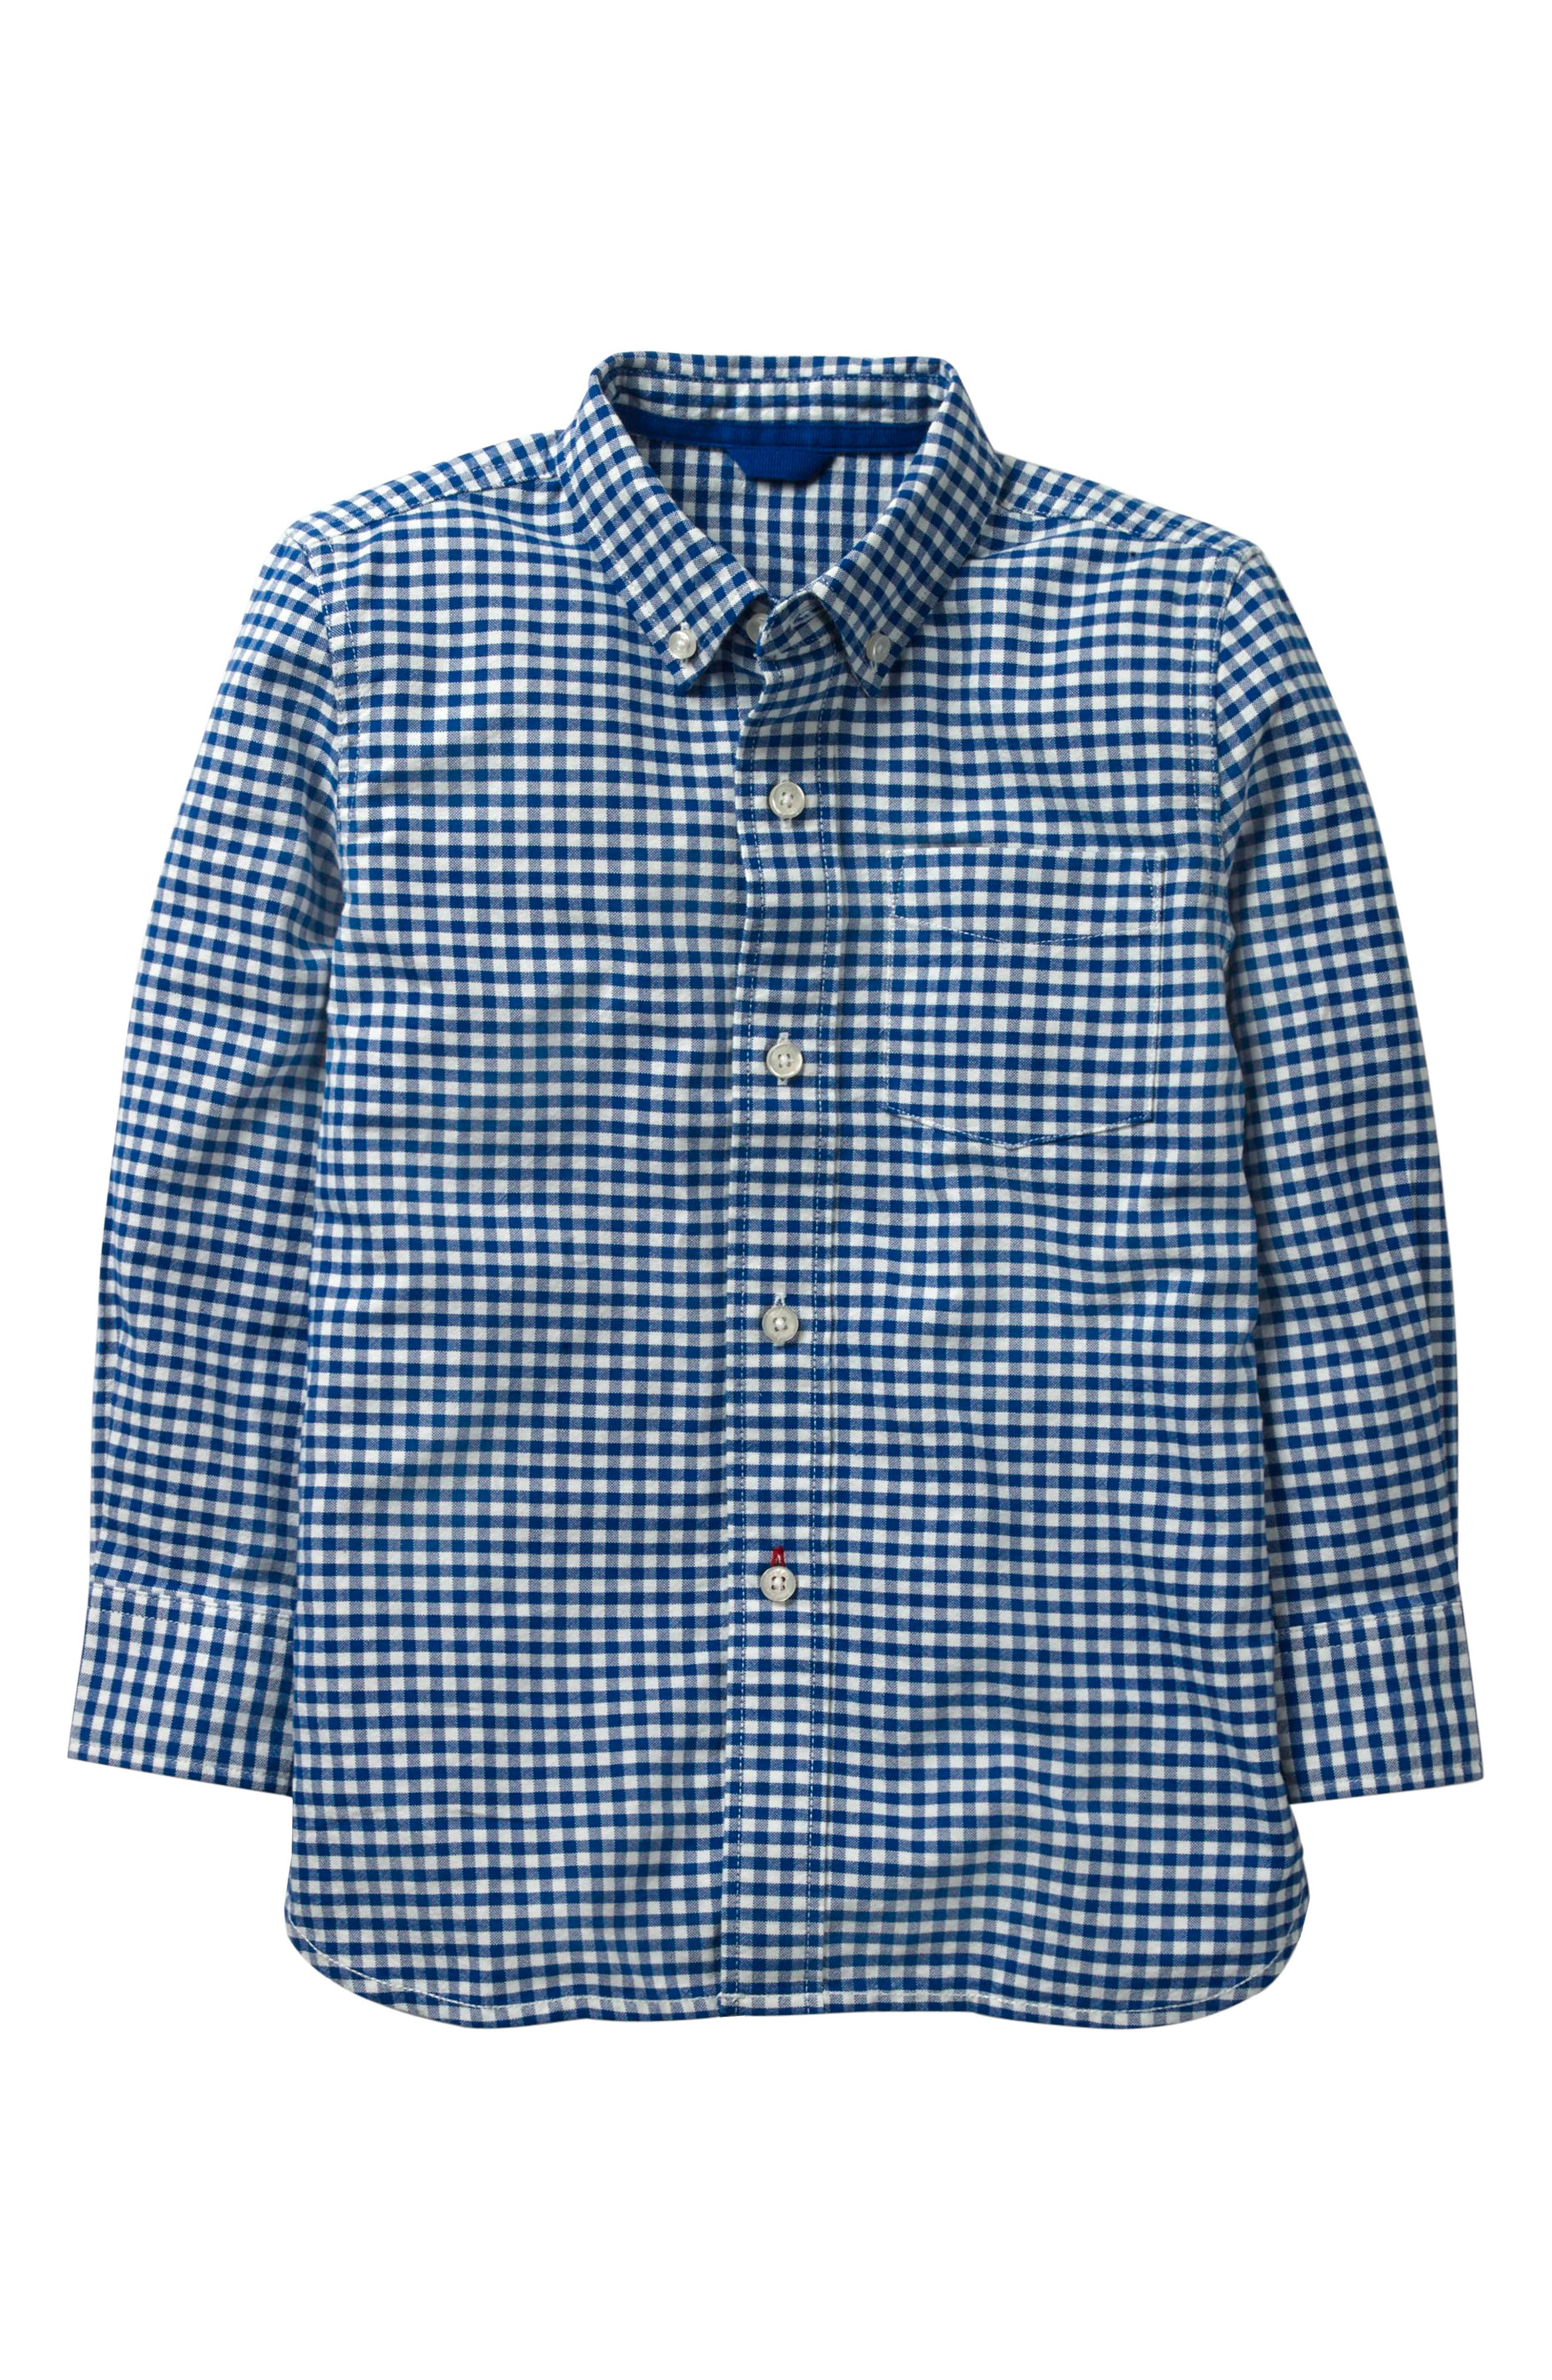 Gingham Oxford Shirt,                         Main,                         color, Orion Blue Gingham